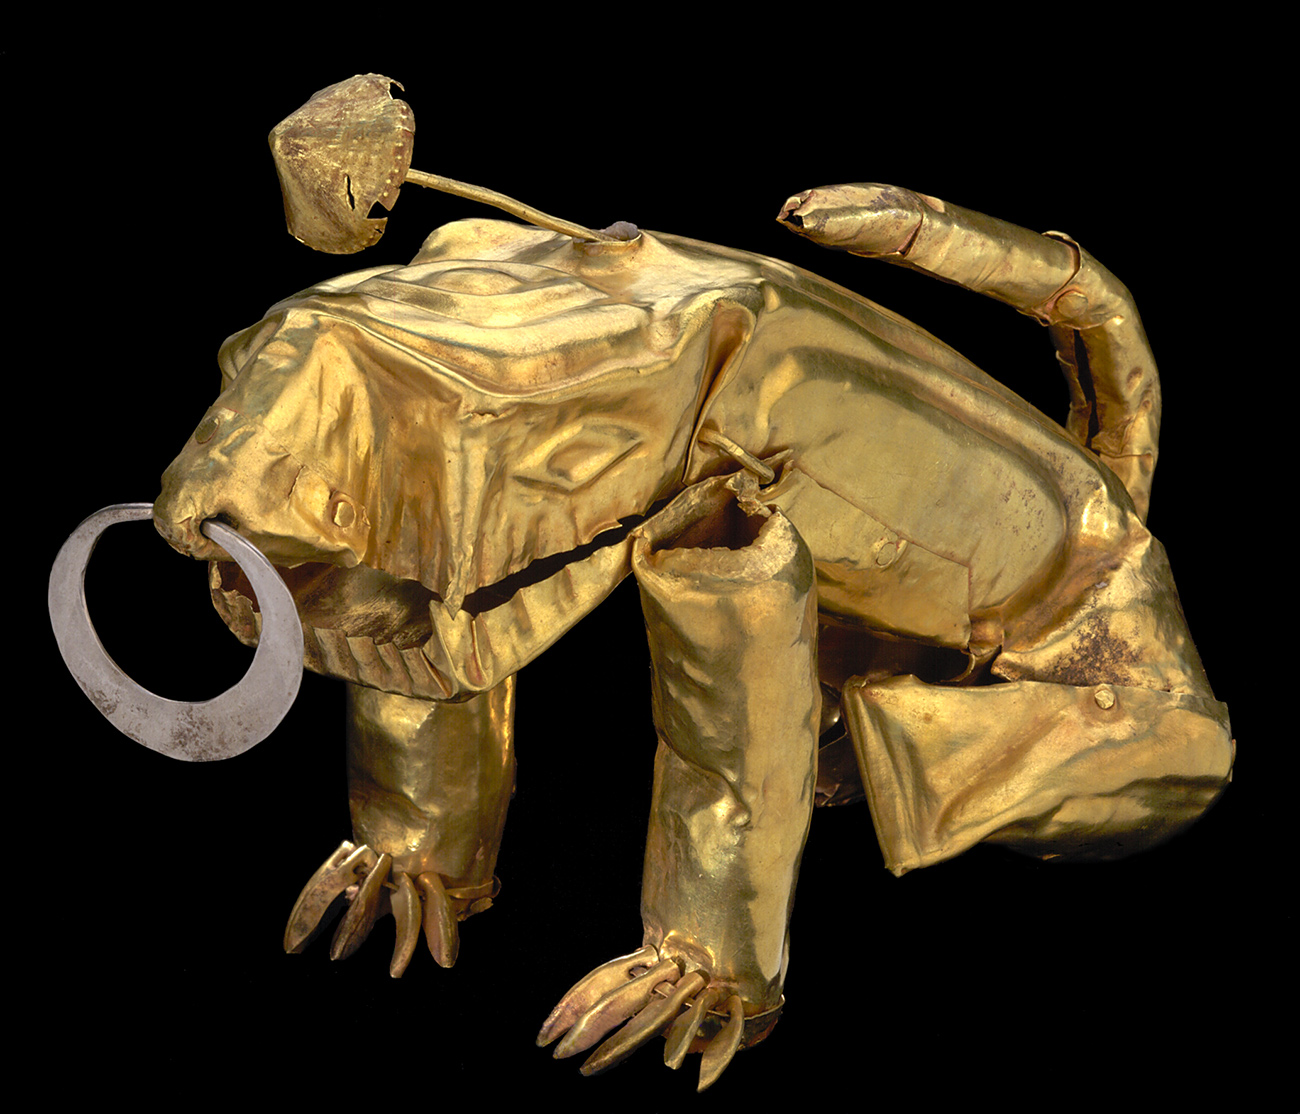 Gold metalwork in the shape of a jaguar